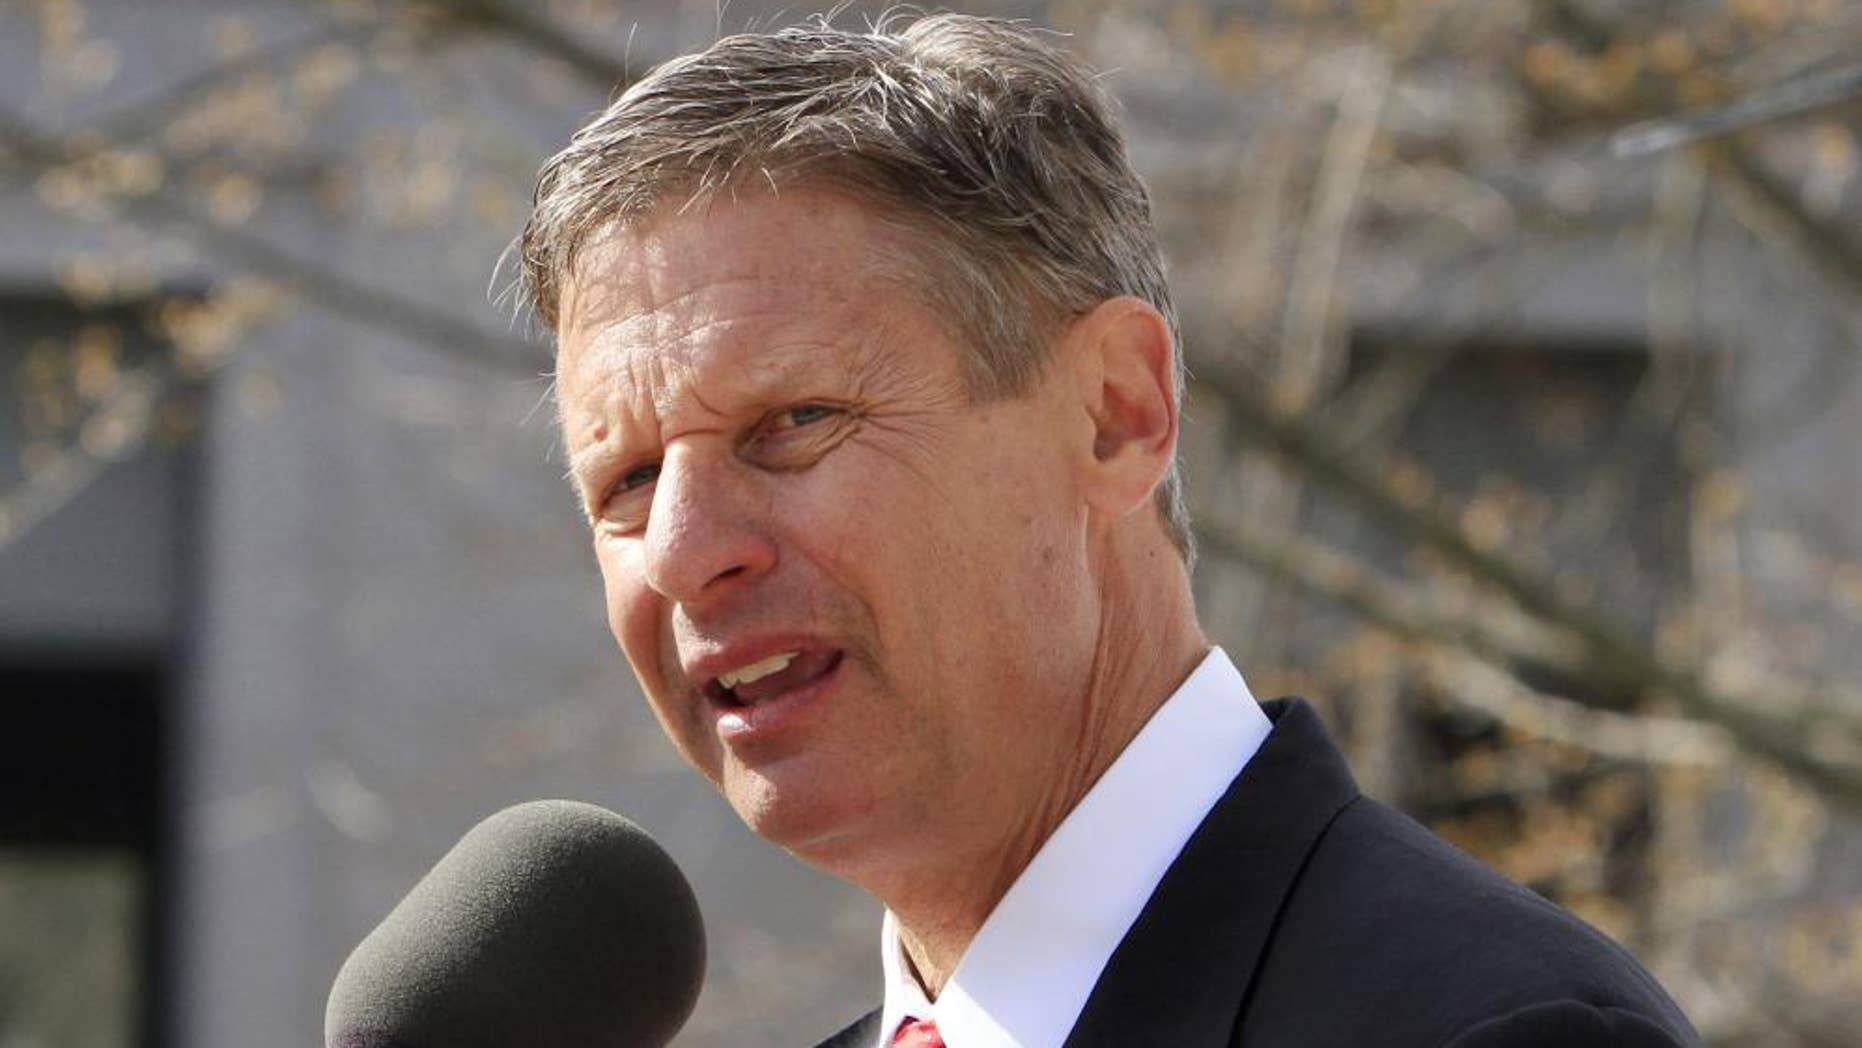 Former New Mexico Gov. Gary Johnson announces his plans to seek the Republican nomination for president in front of the Statehouse Thursday, April 21, 2011 in Concord, N.H. (AP Photo/Jim Cole)